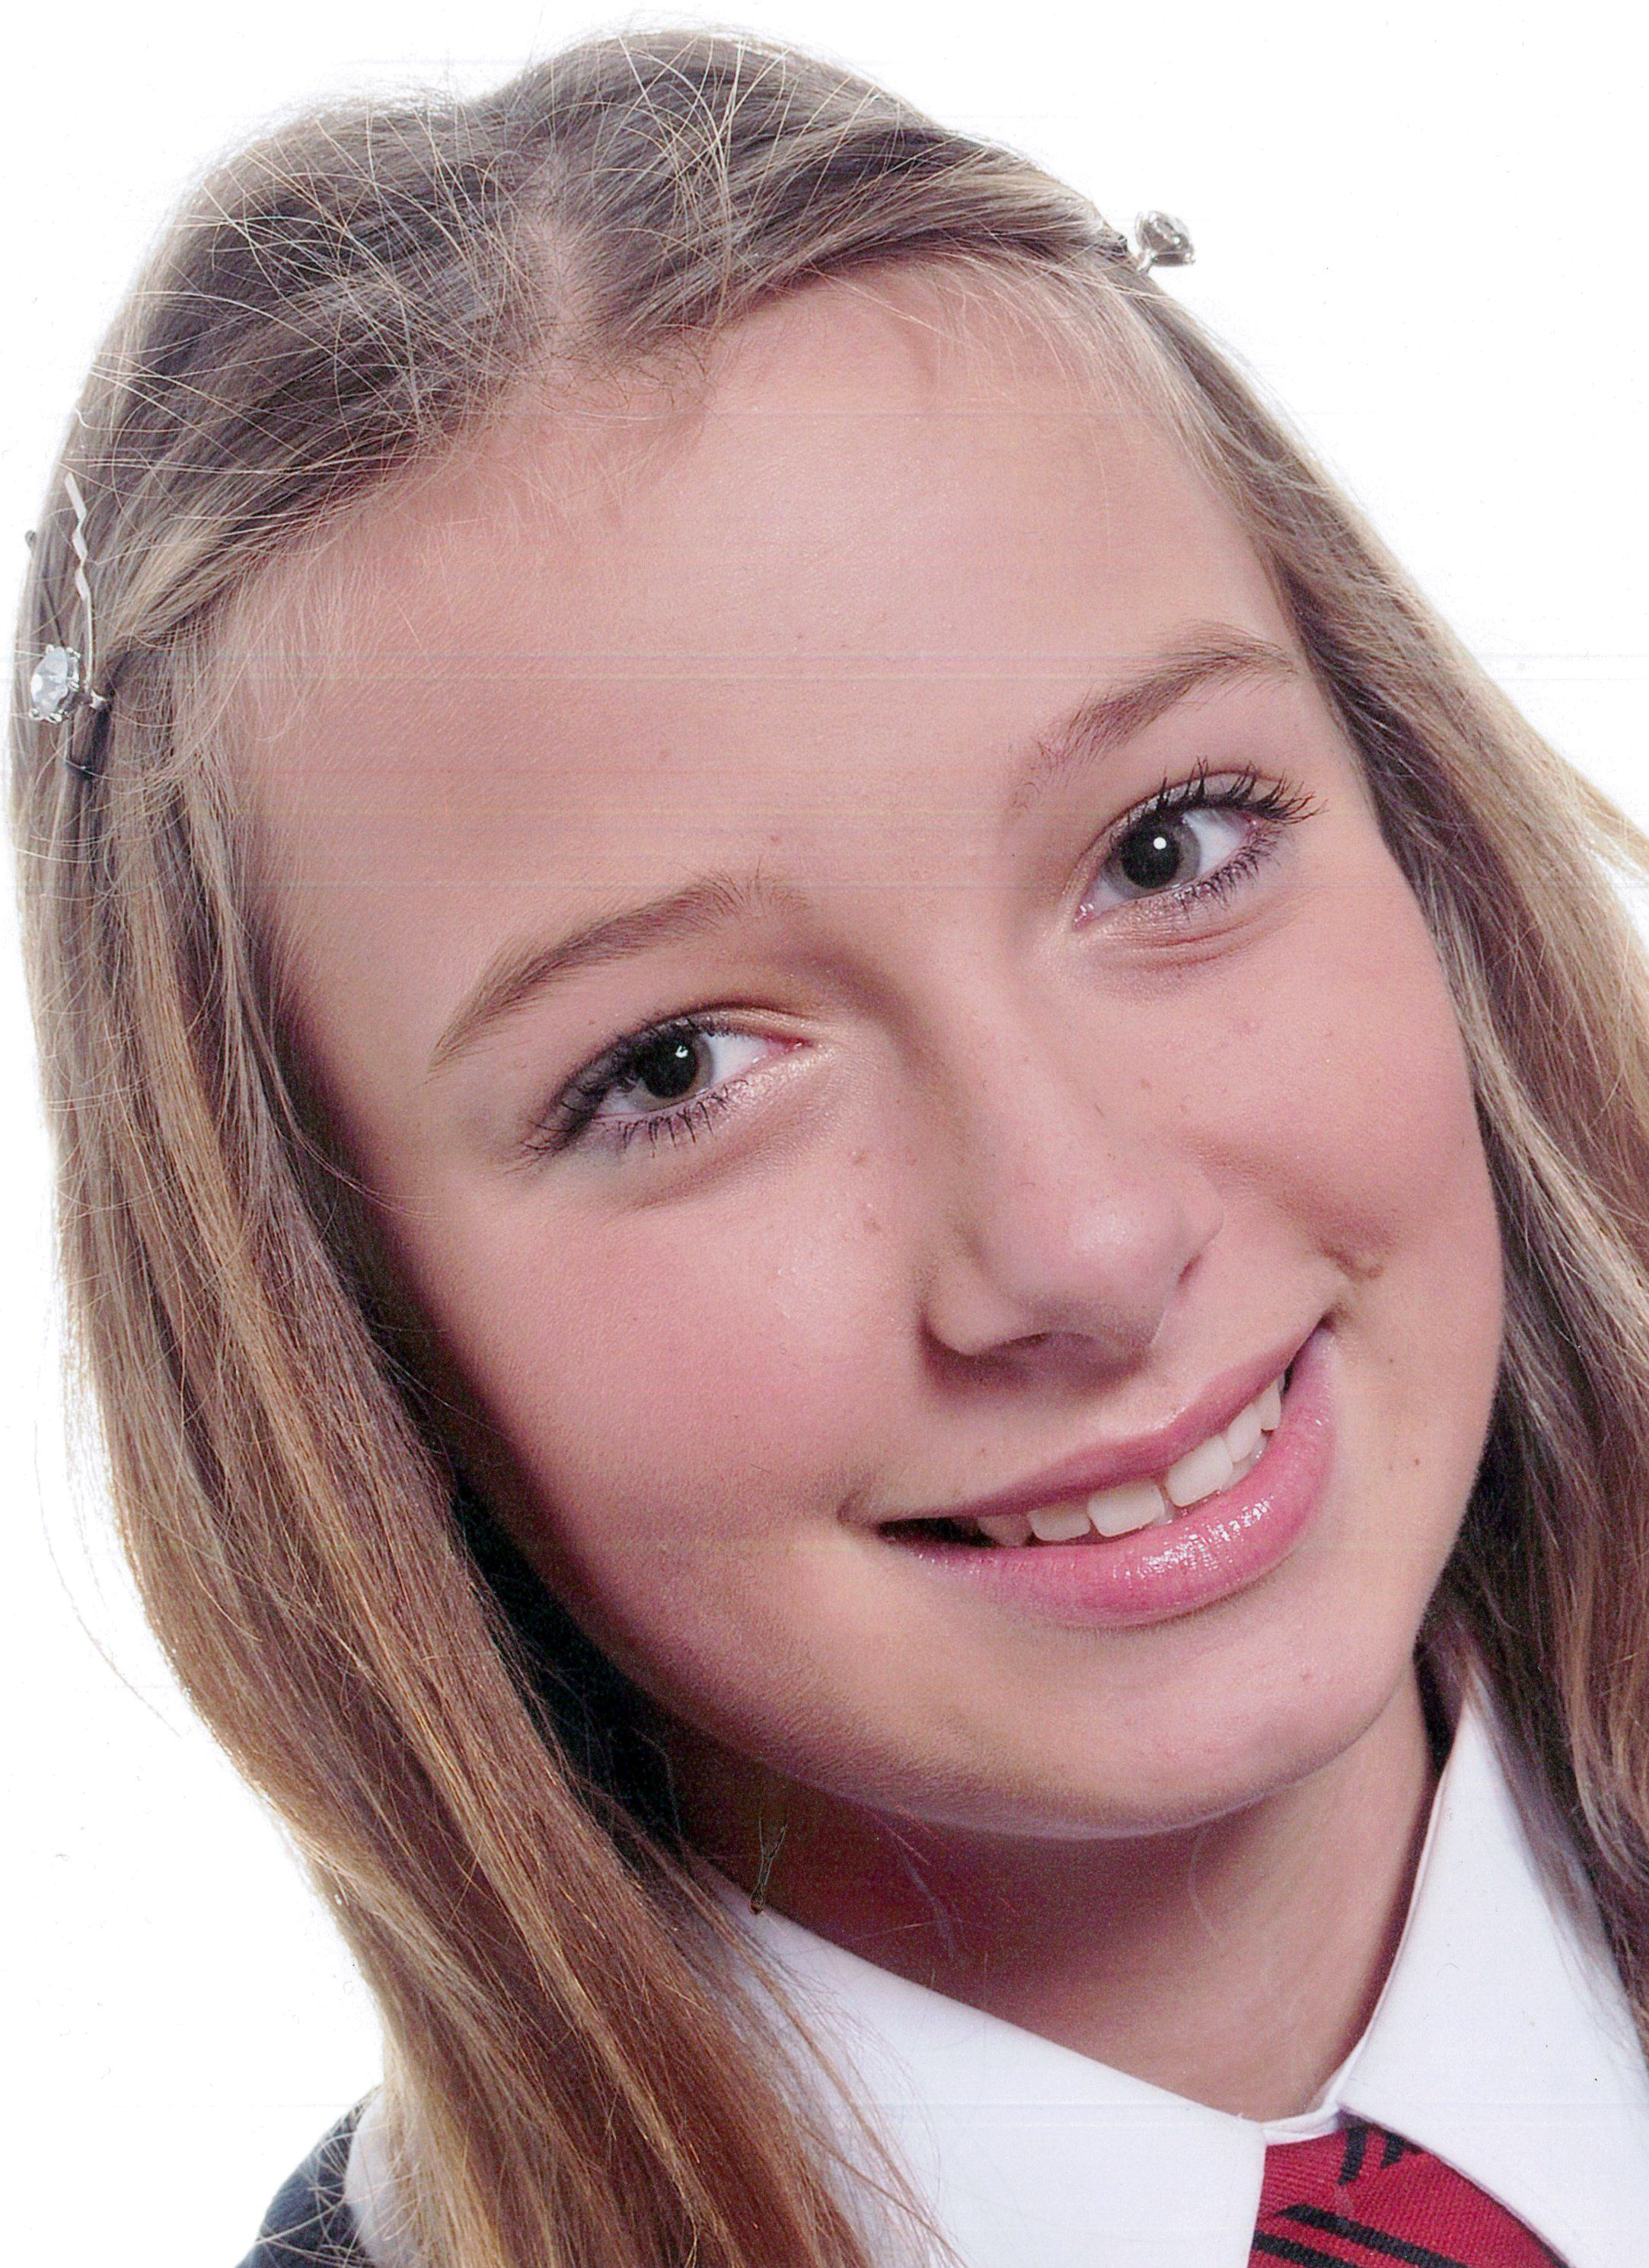 Girl Bullied At School For Her Looks Is Now A Teenage Beauty Queen UNILAD NTI BULLIED BEAUTY 0158883